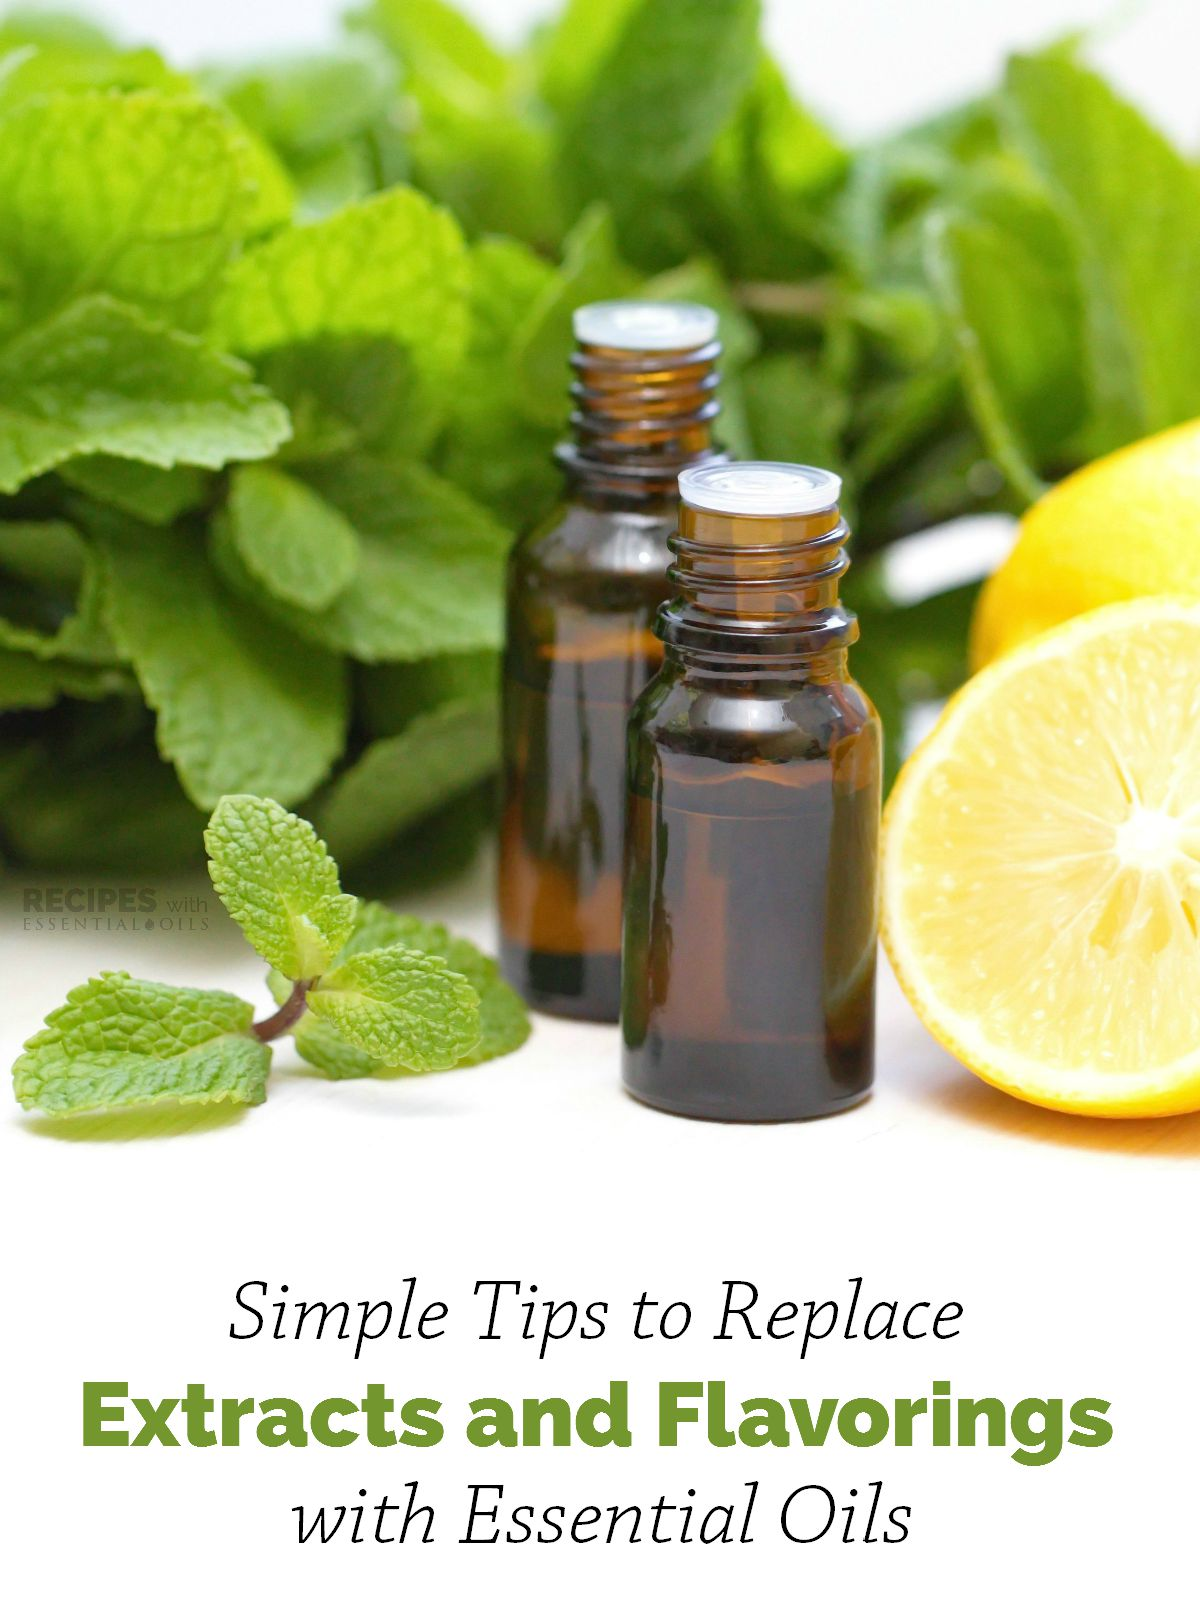 Simple tips to replace extracts and flavorings with essential oils | RecipesWithEssentialOils.com